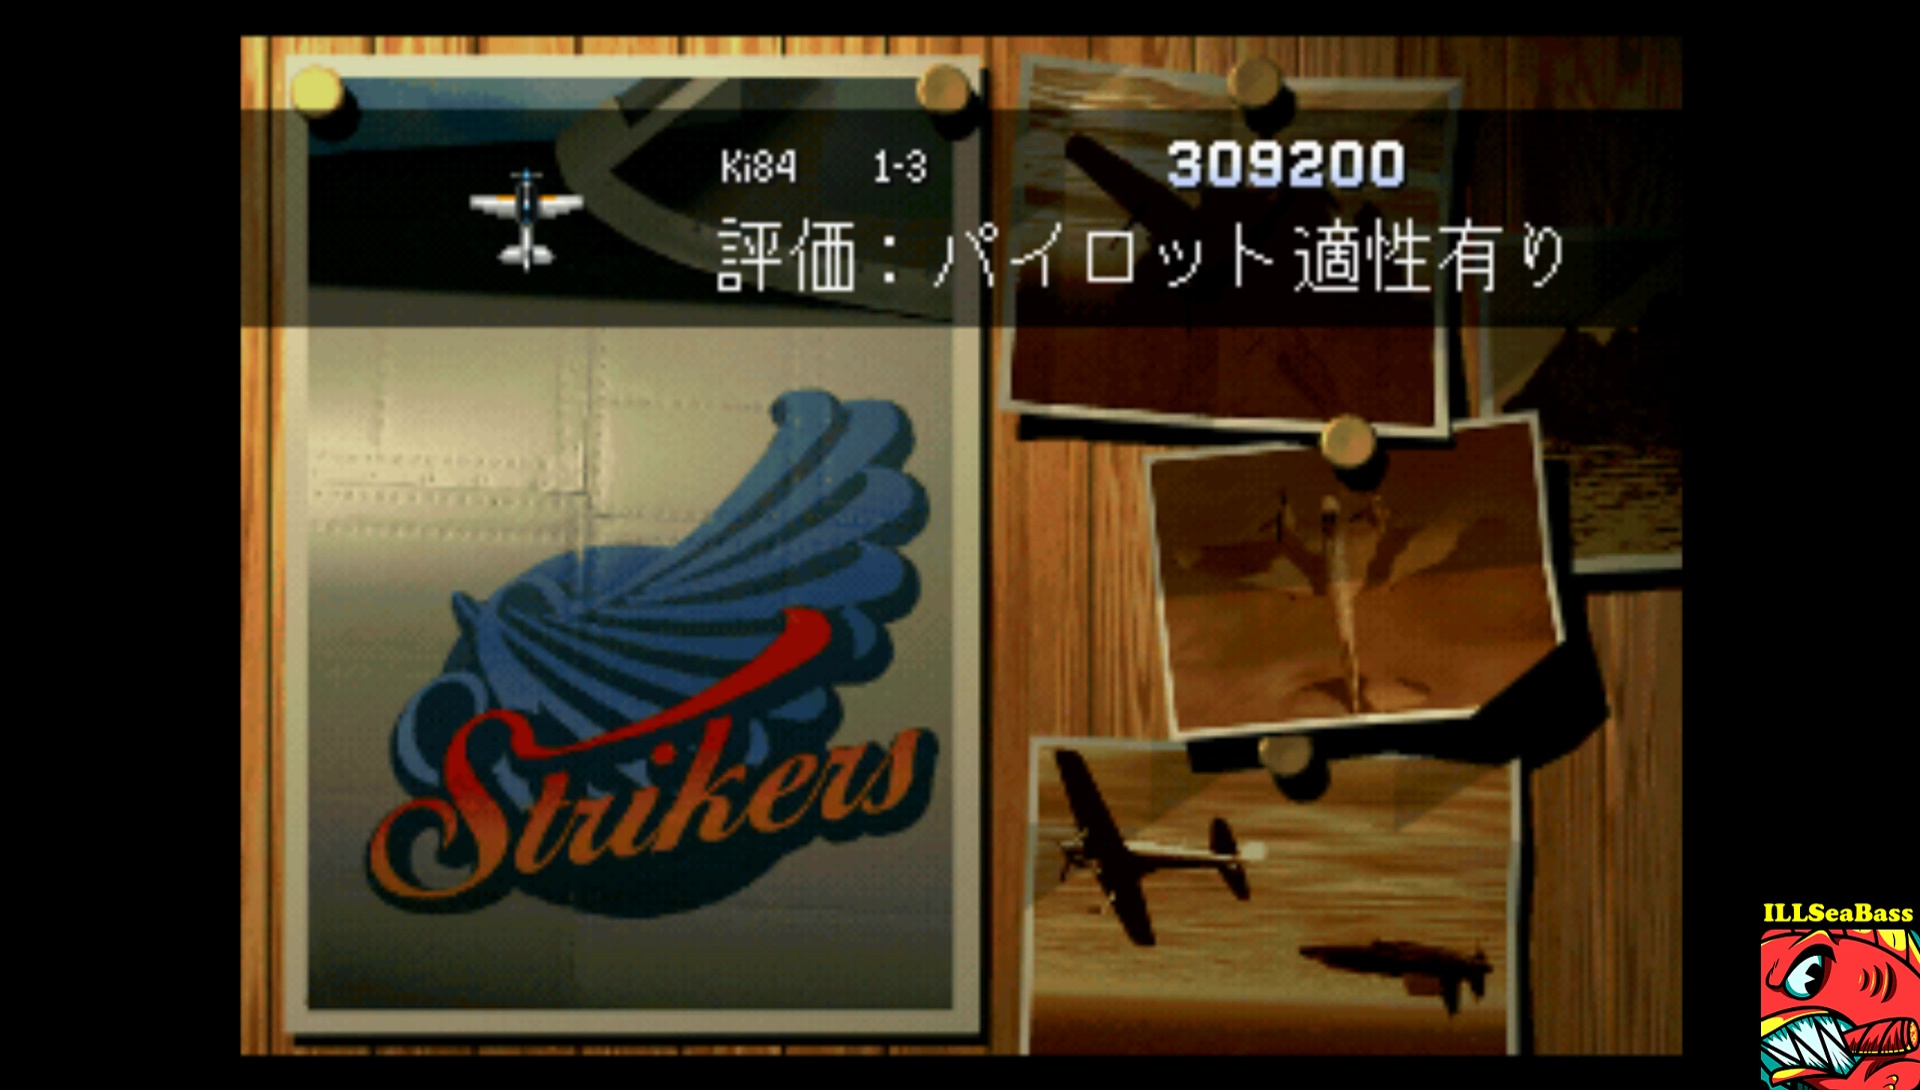 Strikers 1945 II (Playstation 1 Emulated) high score by